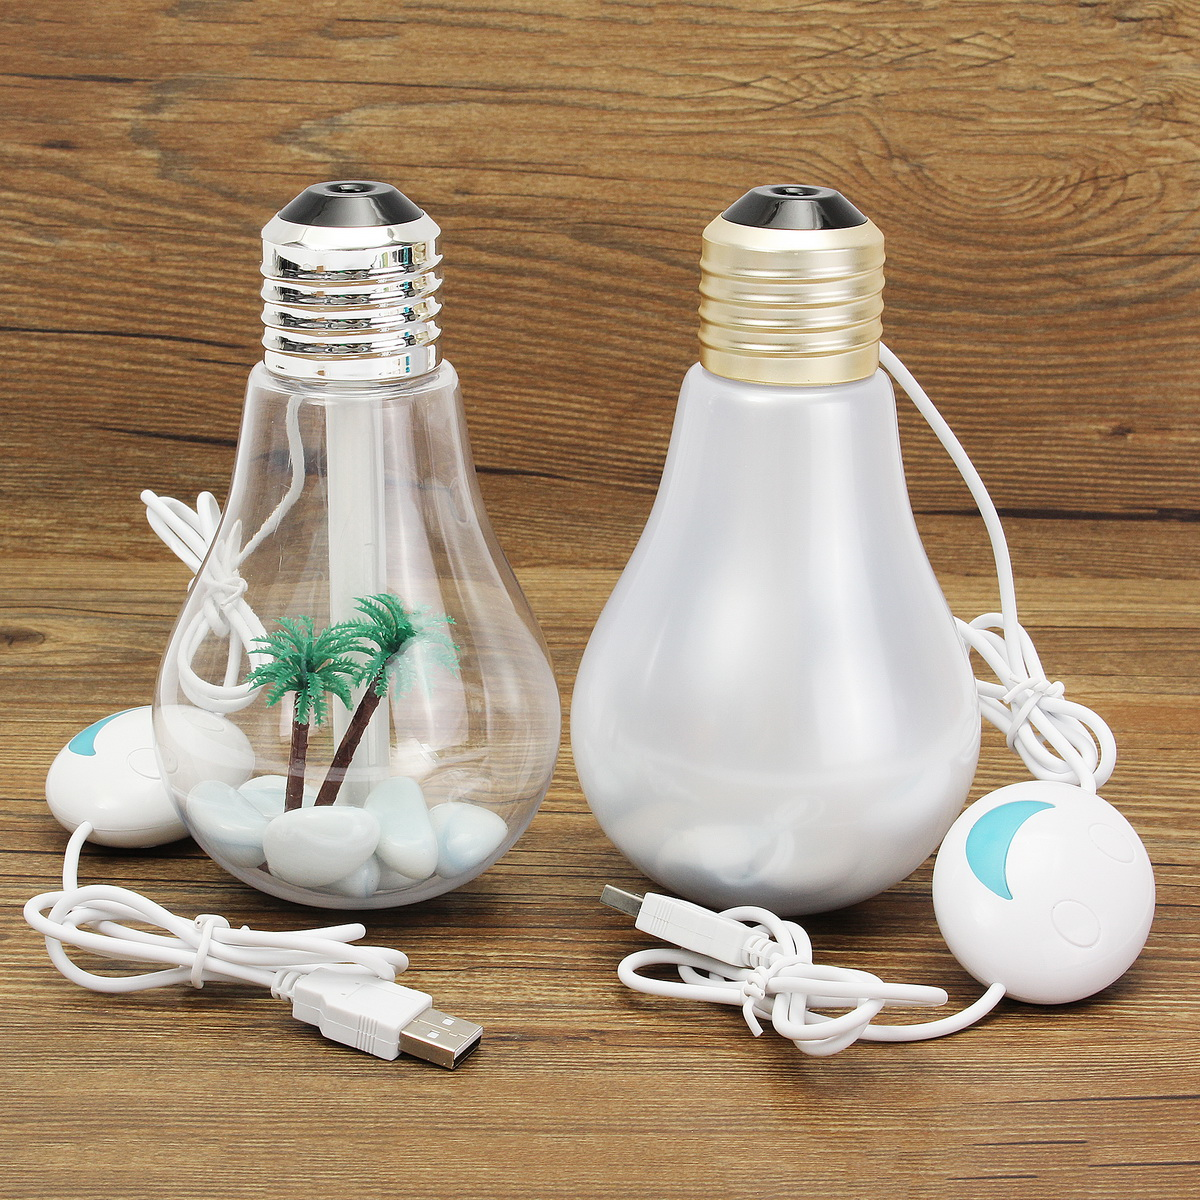 Portable E27 LED Bulb Humidifier Colorful Lights USB Diffuser Air Purifier Gift